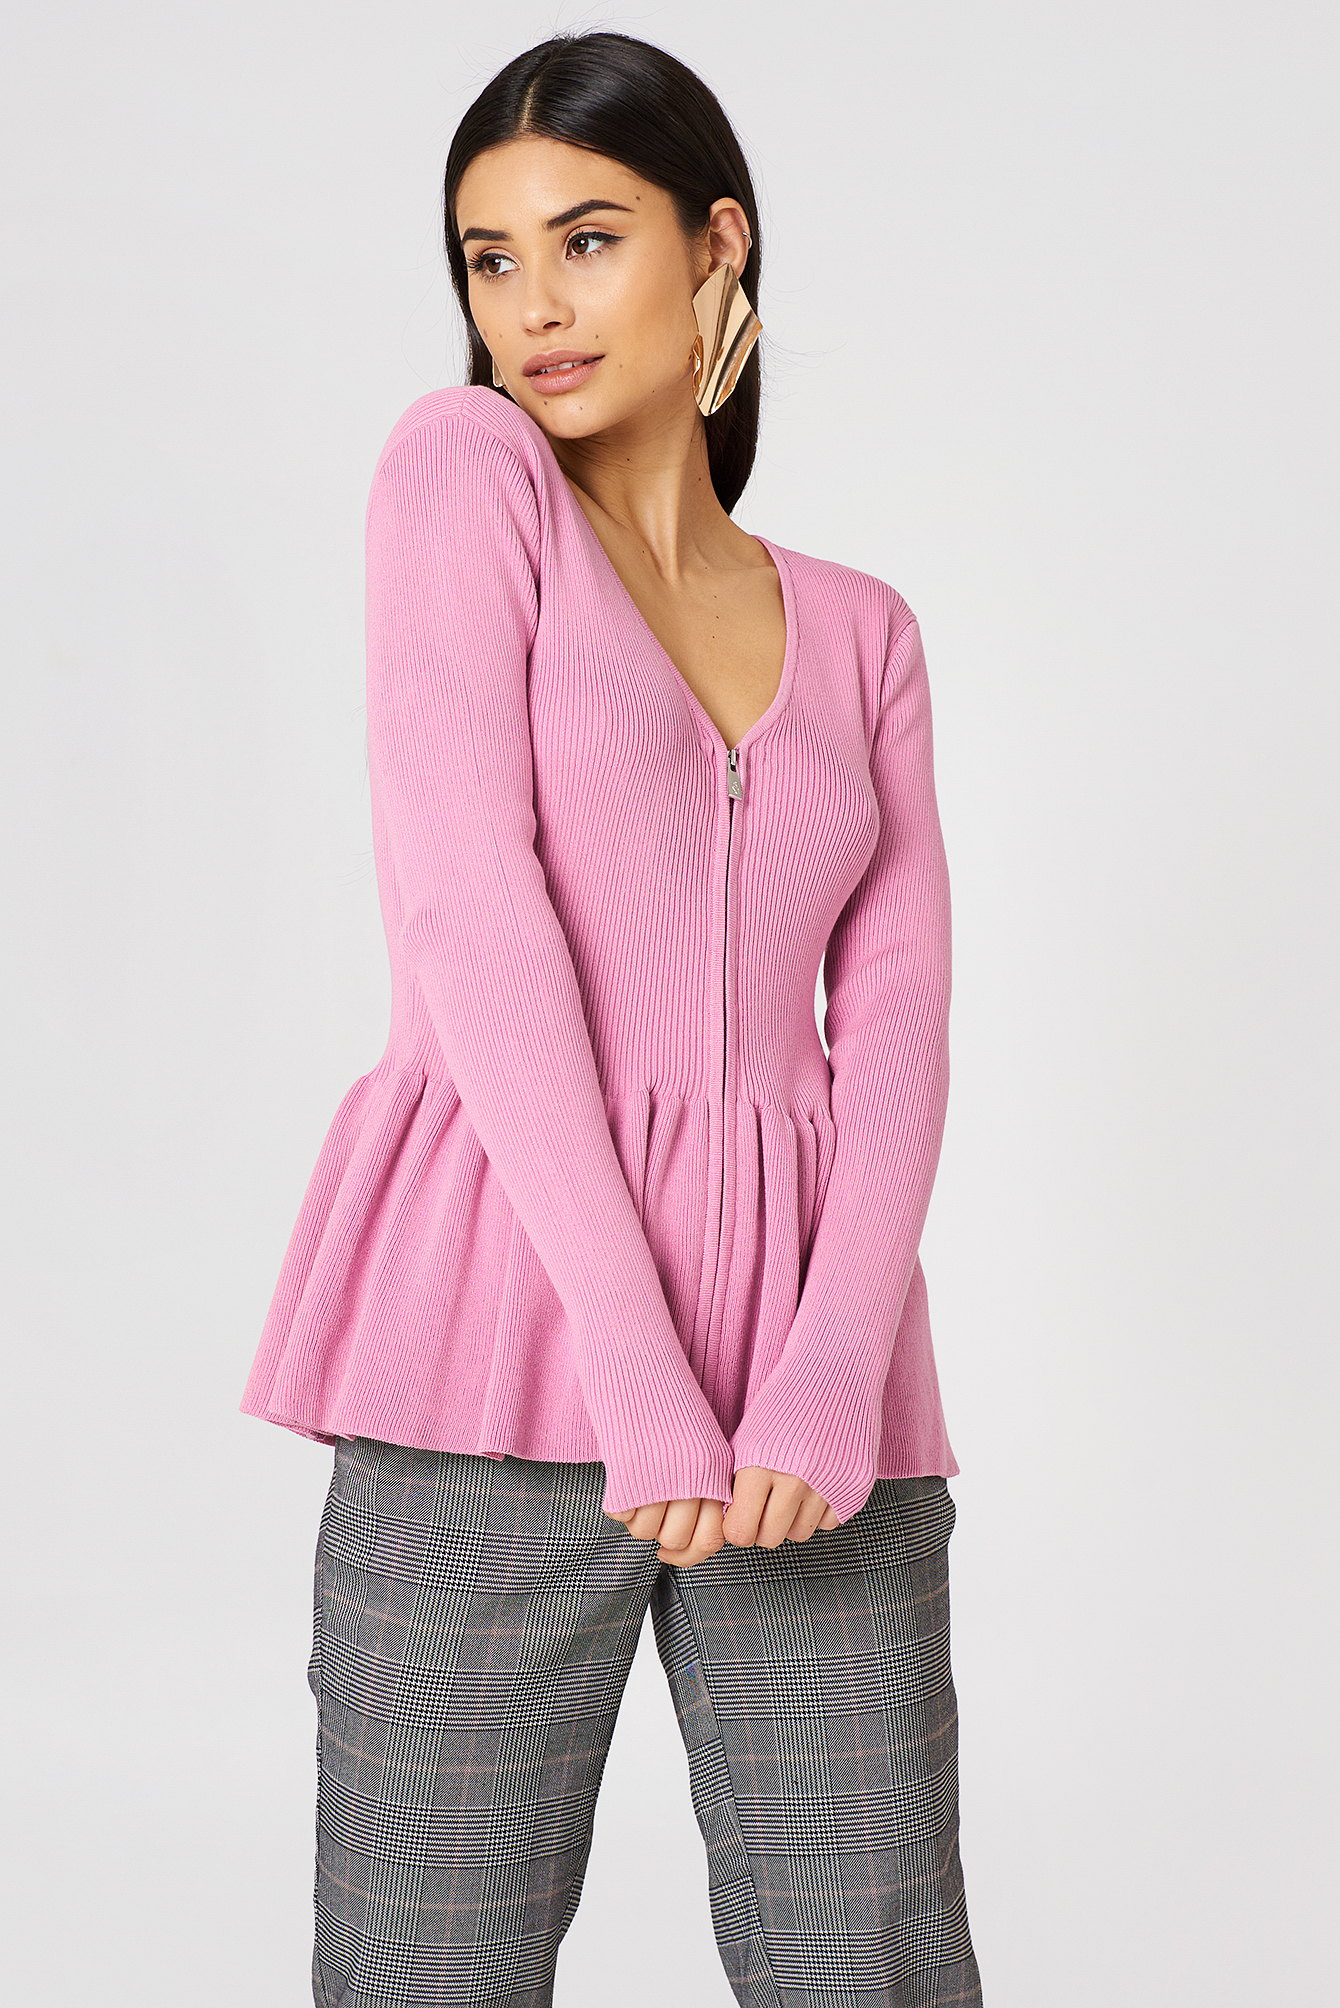 STORM & MARIE NAP FRILL KNIT - PINK